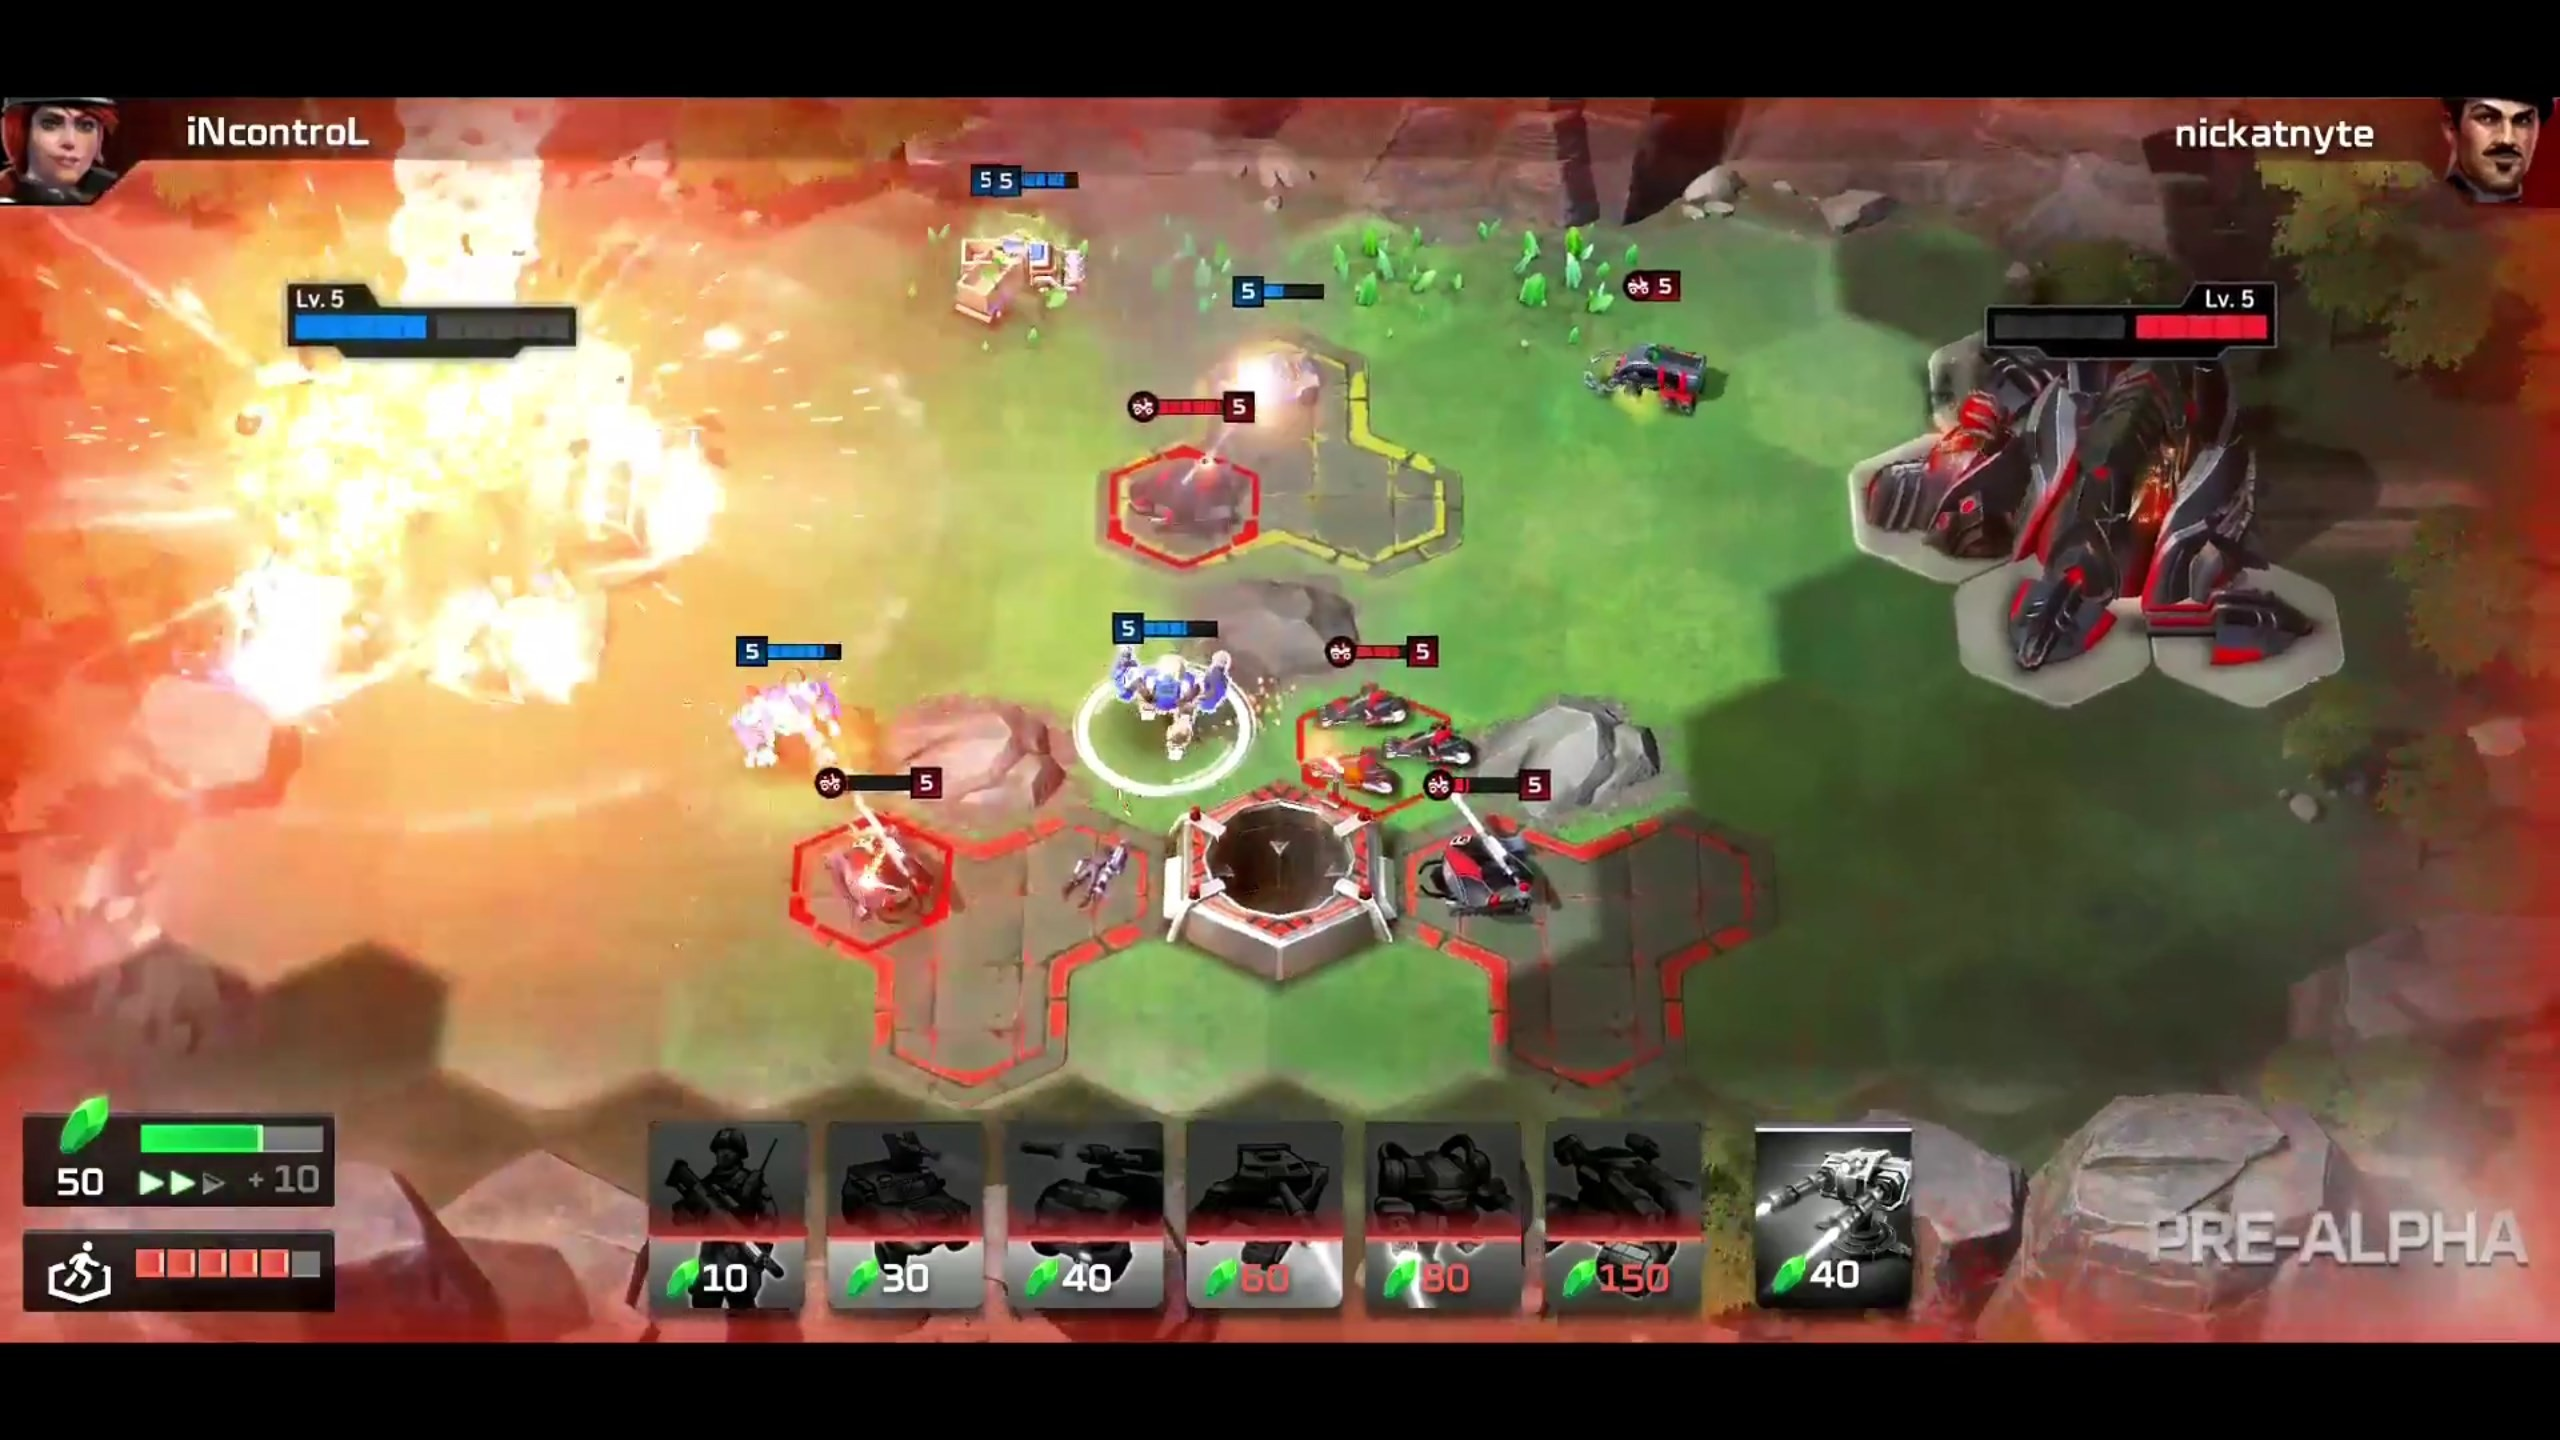 There's A New Command & Conquer Game, But It's For Mobile